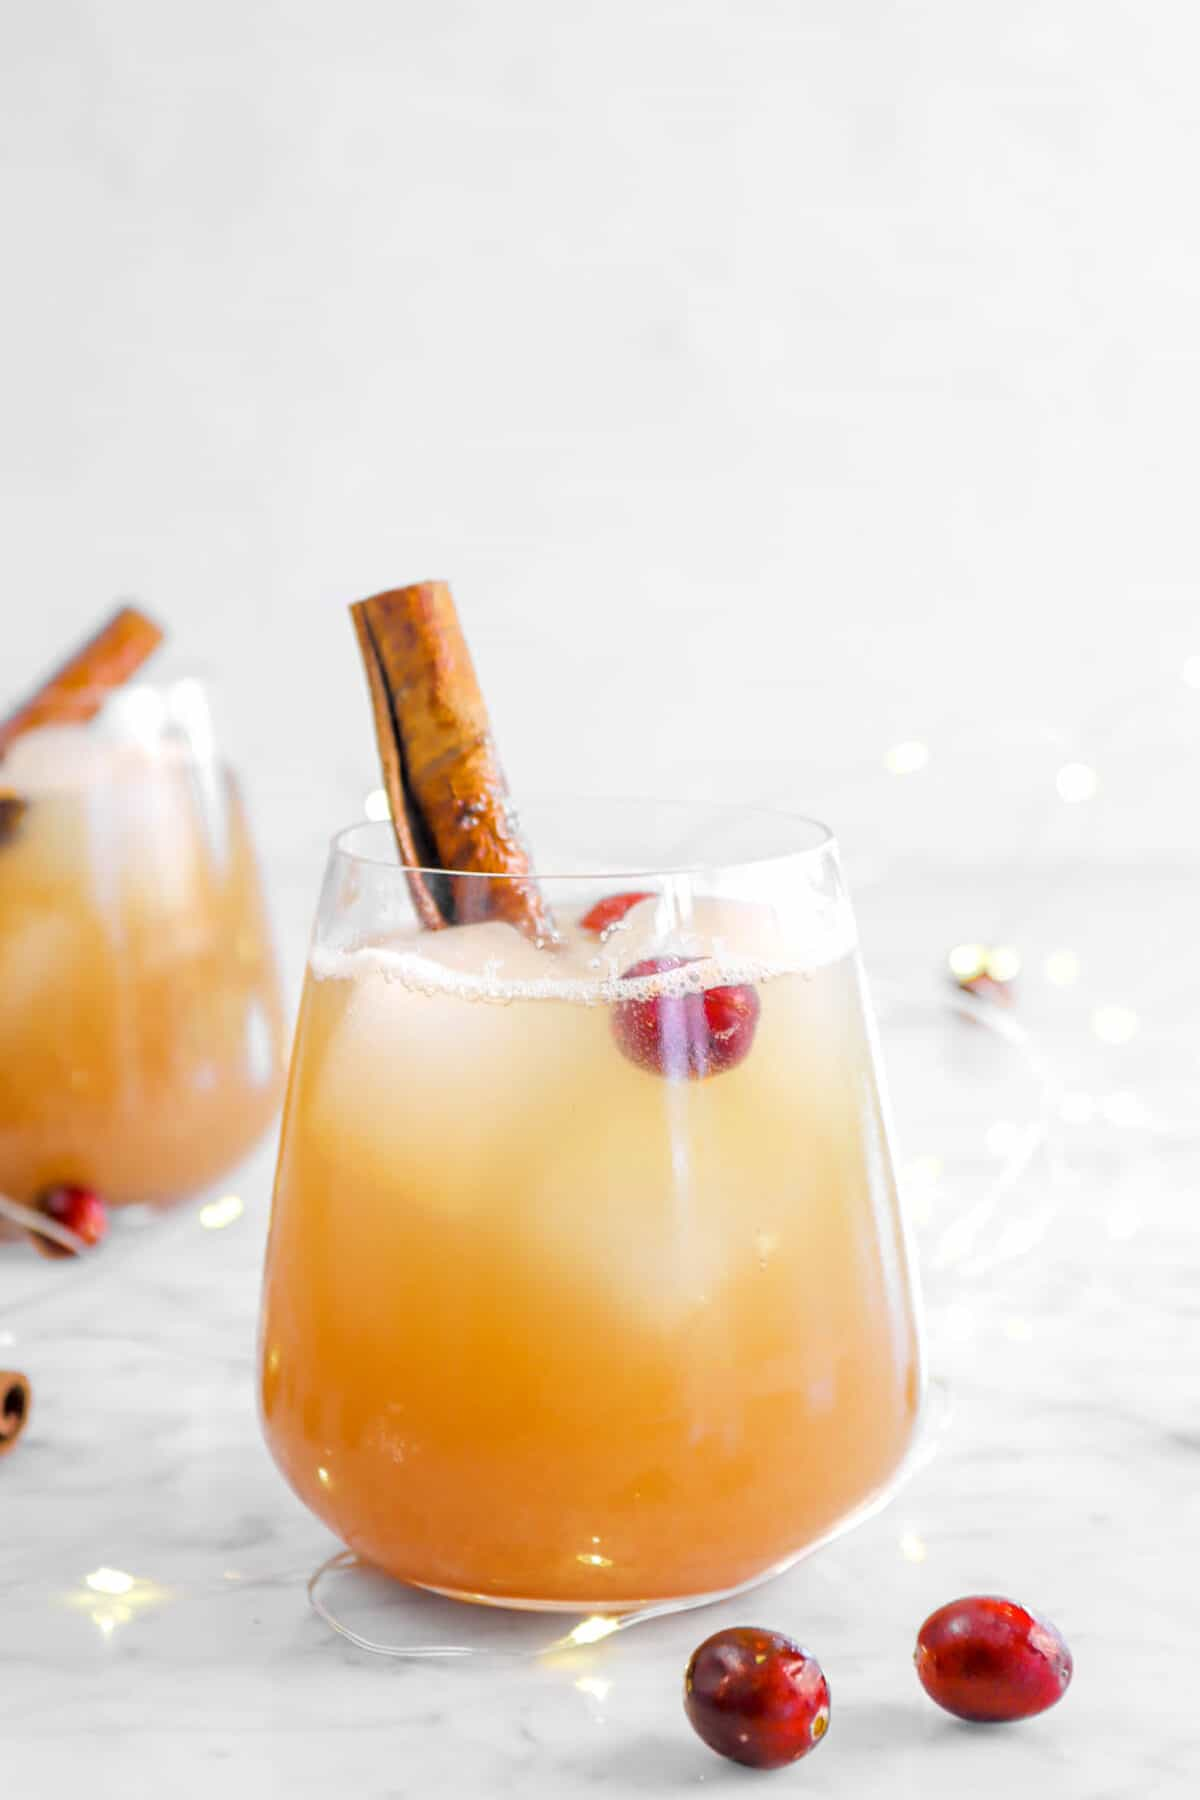 apple cider bourbon fizz in glass with cranberries and cinnamon stick